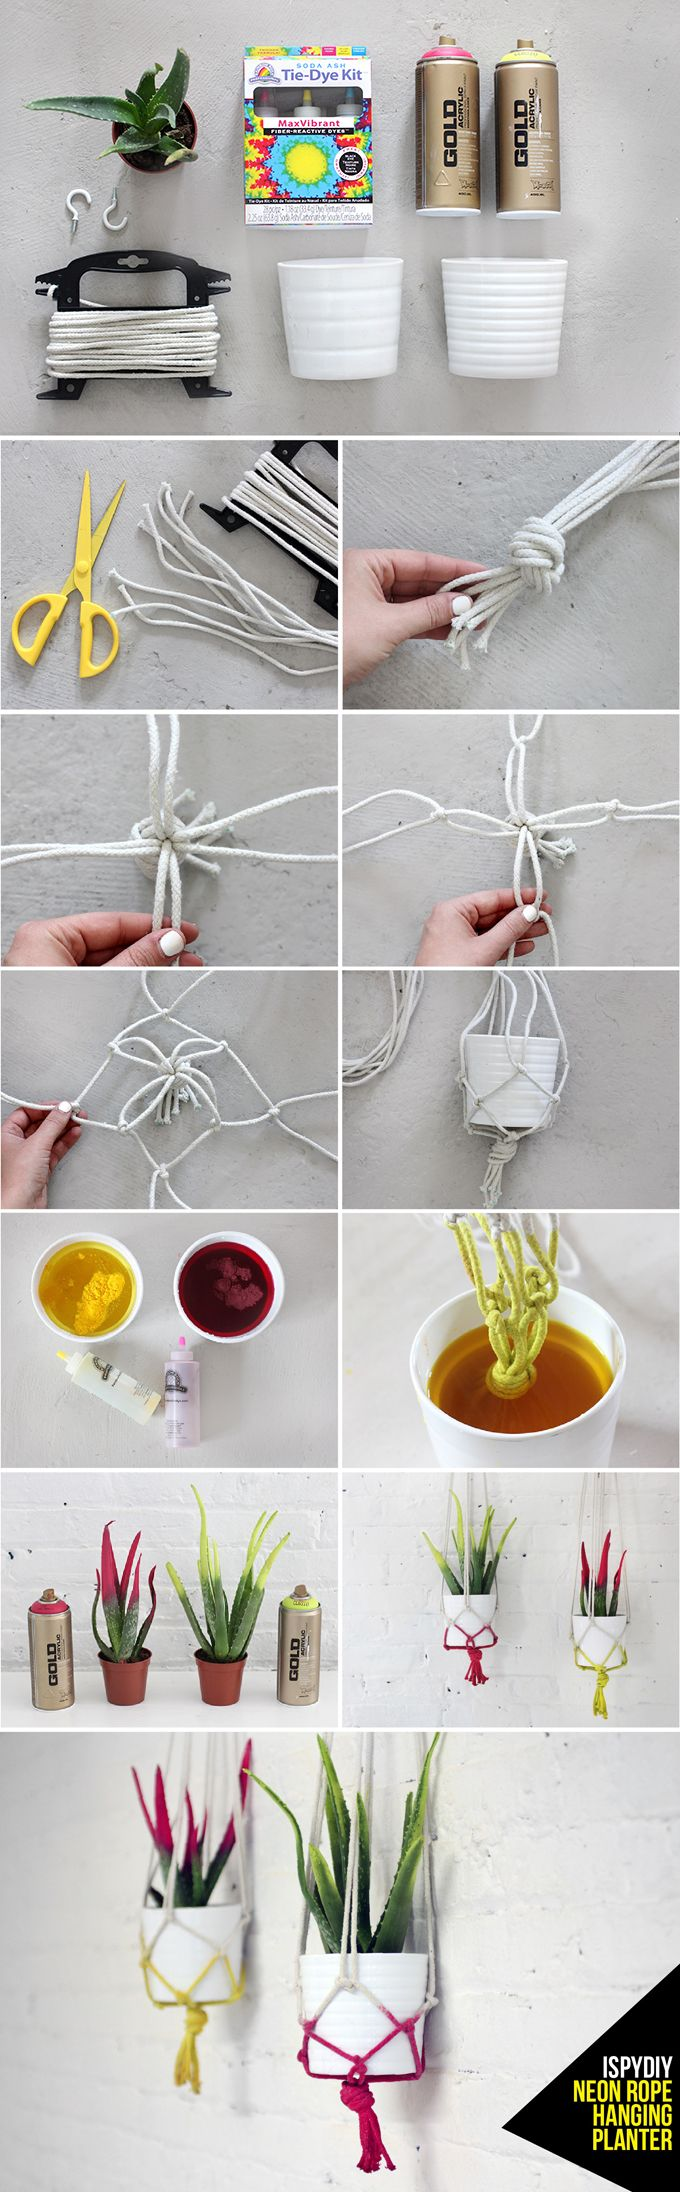 21 DIY macrame rope hanging planter